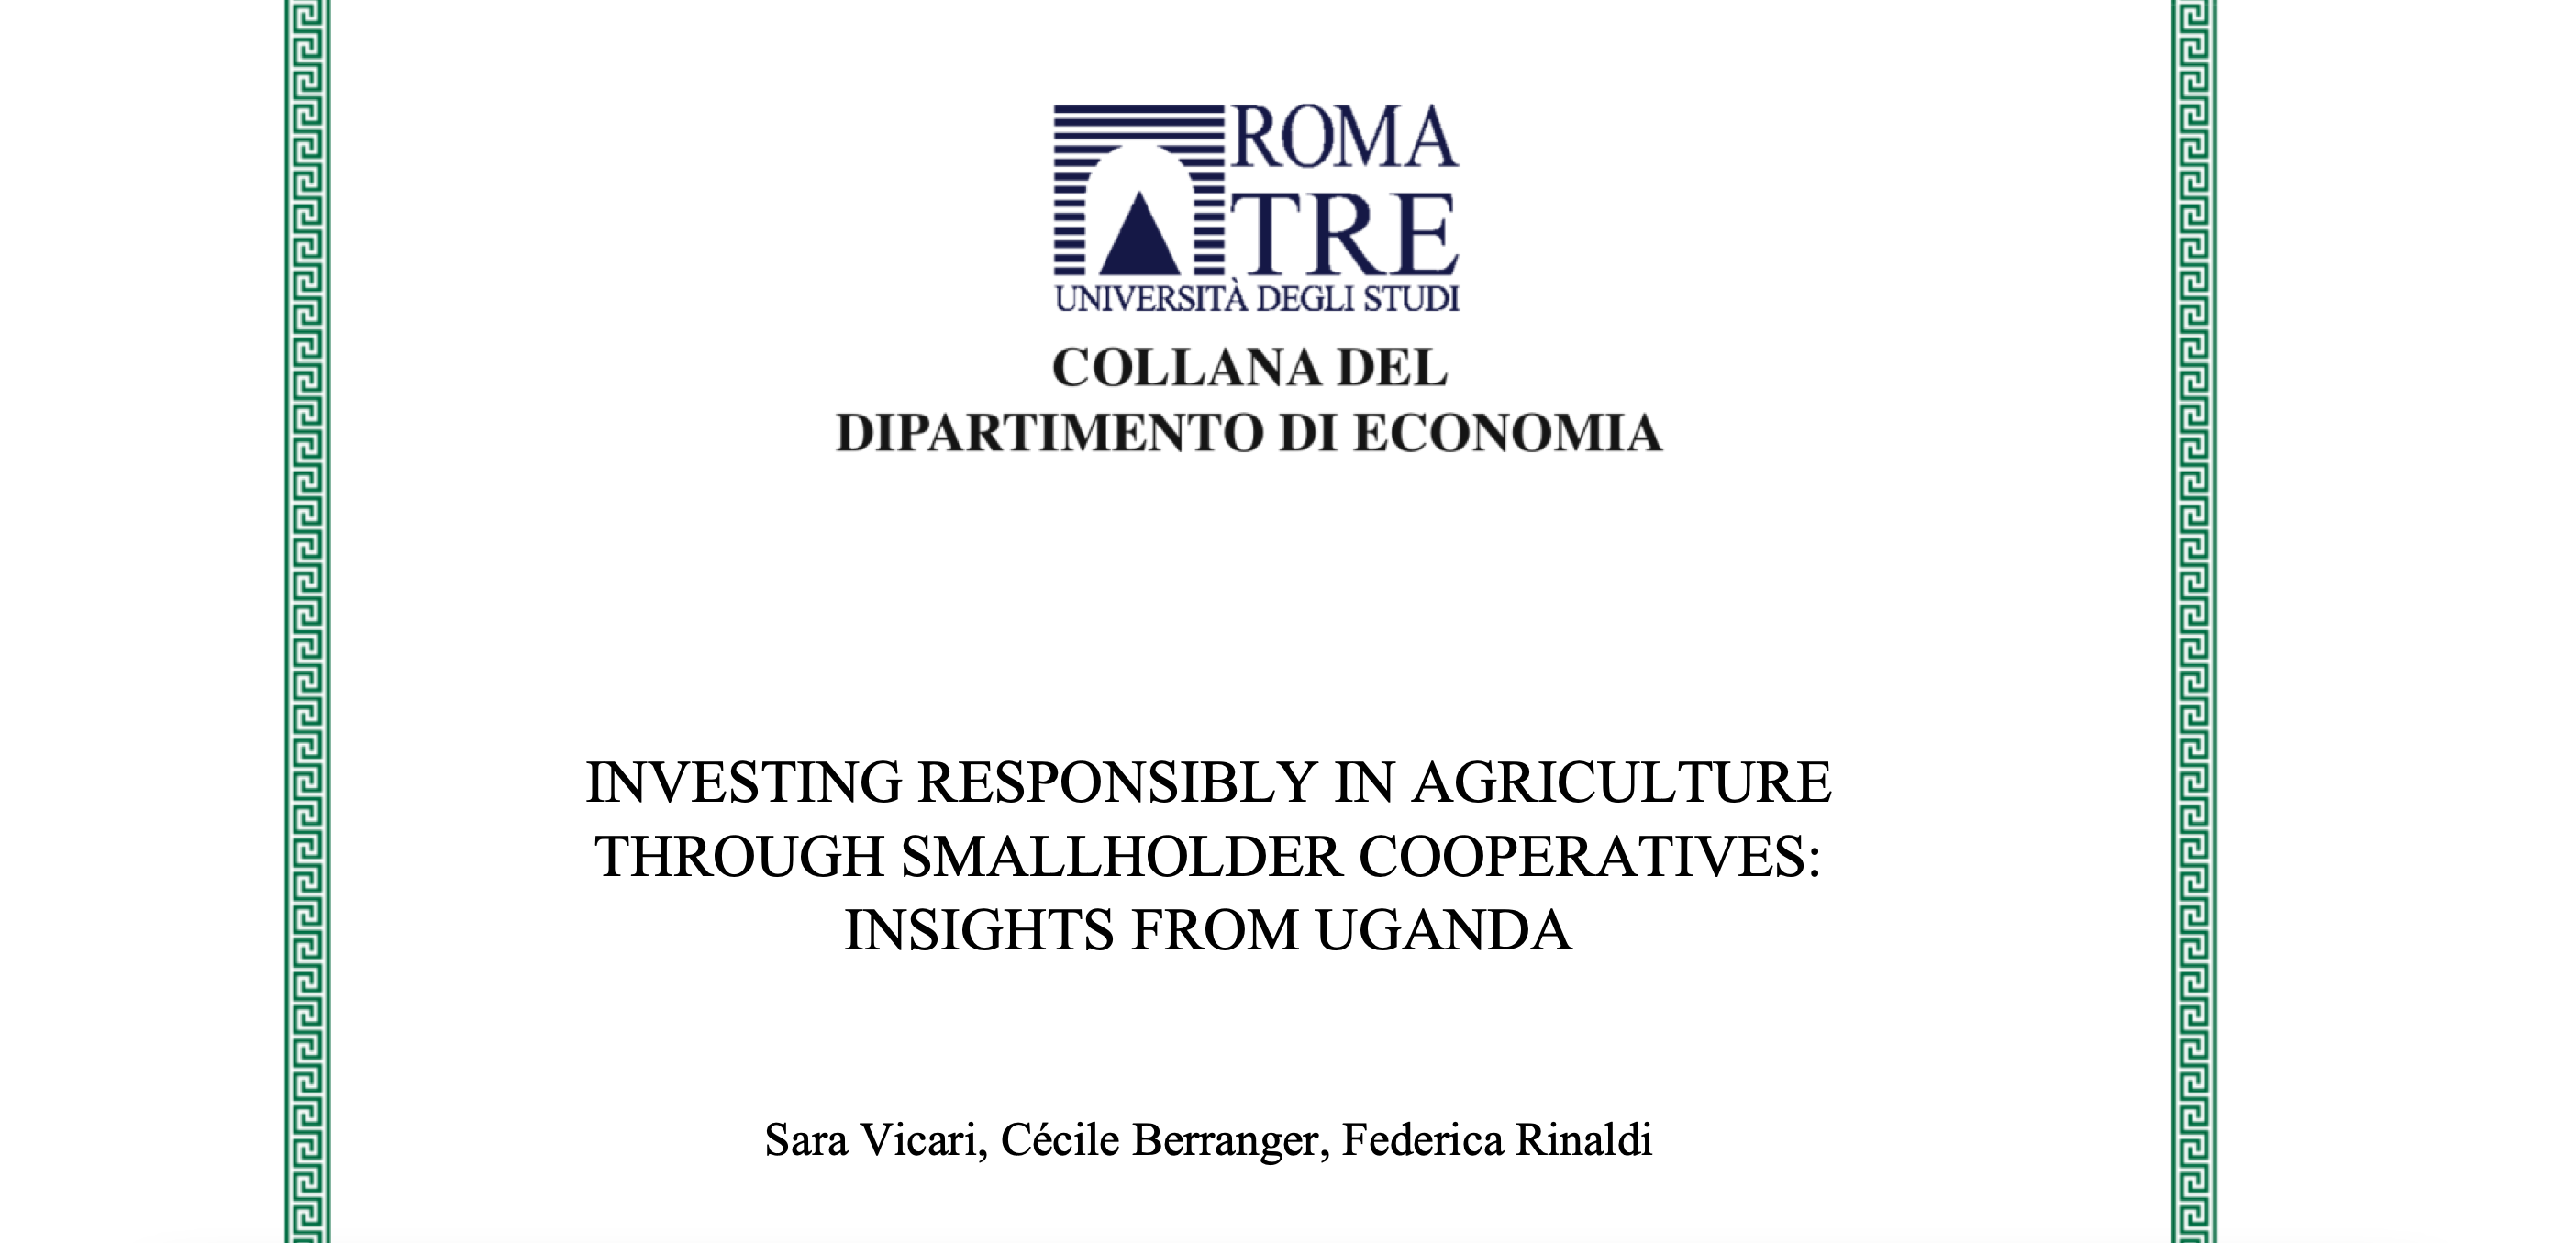 Investing responsibly in agriculture through smallholder cooperatives: insights from Uganda